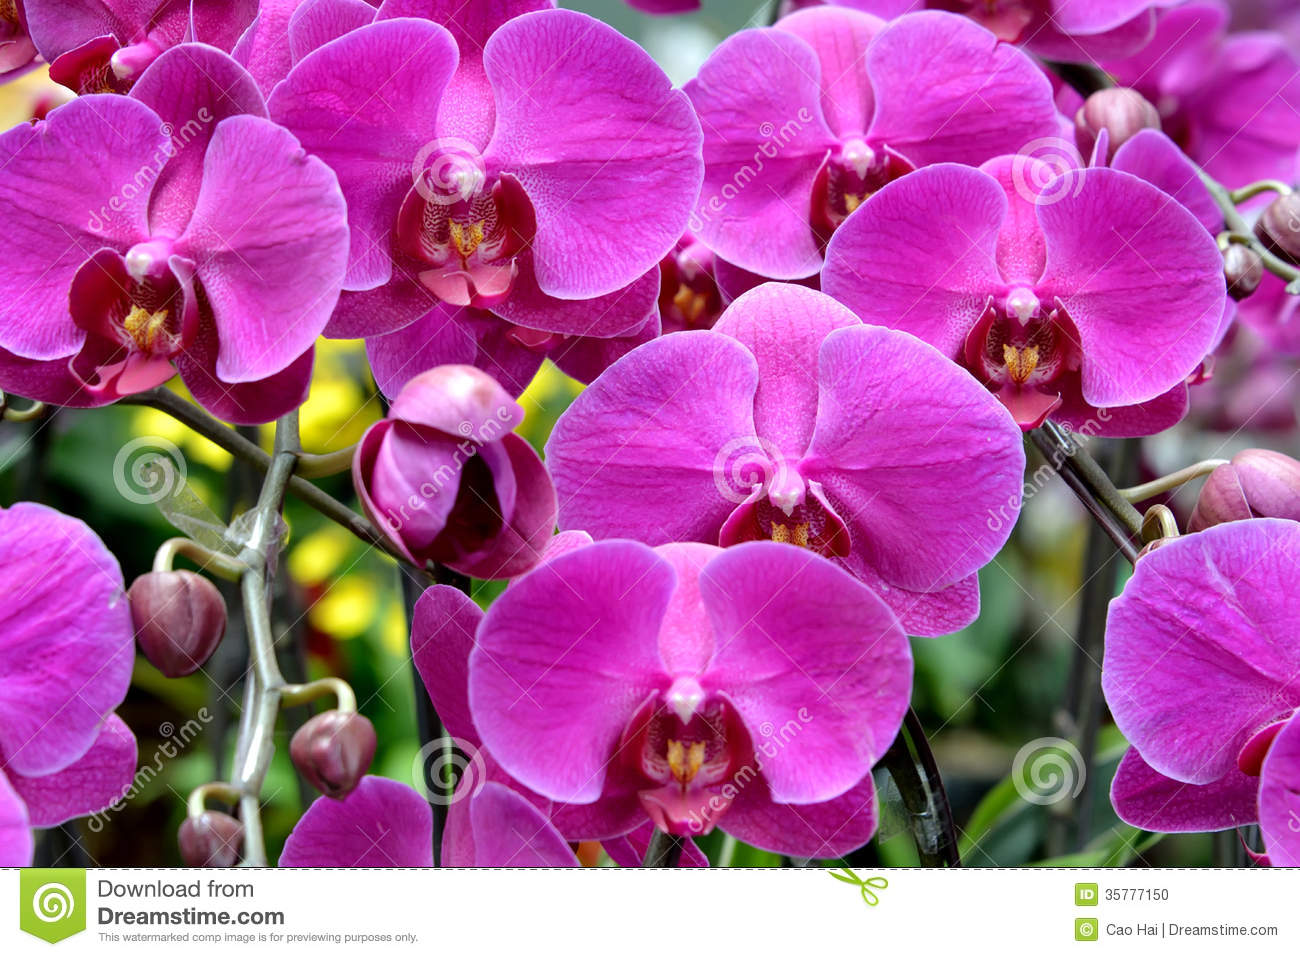 Butterfly Orchid In Light Red Purple Stock Photo - Image: 35777150